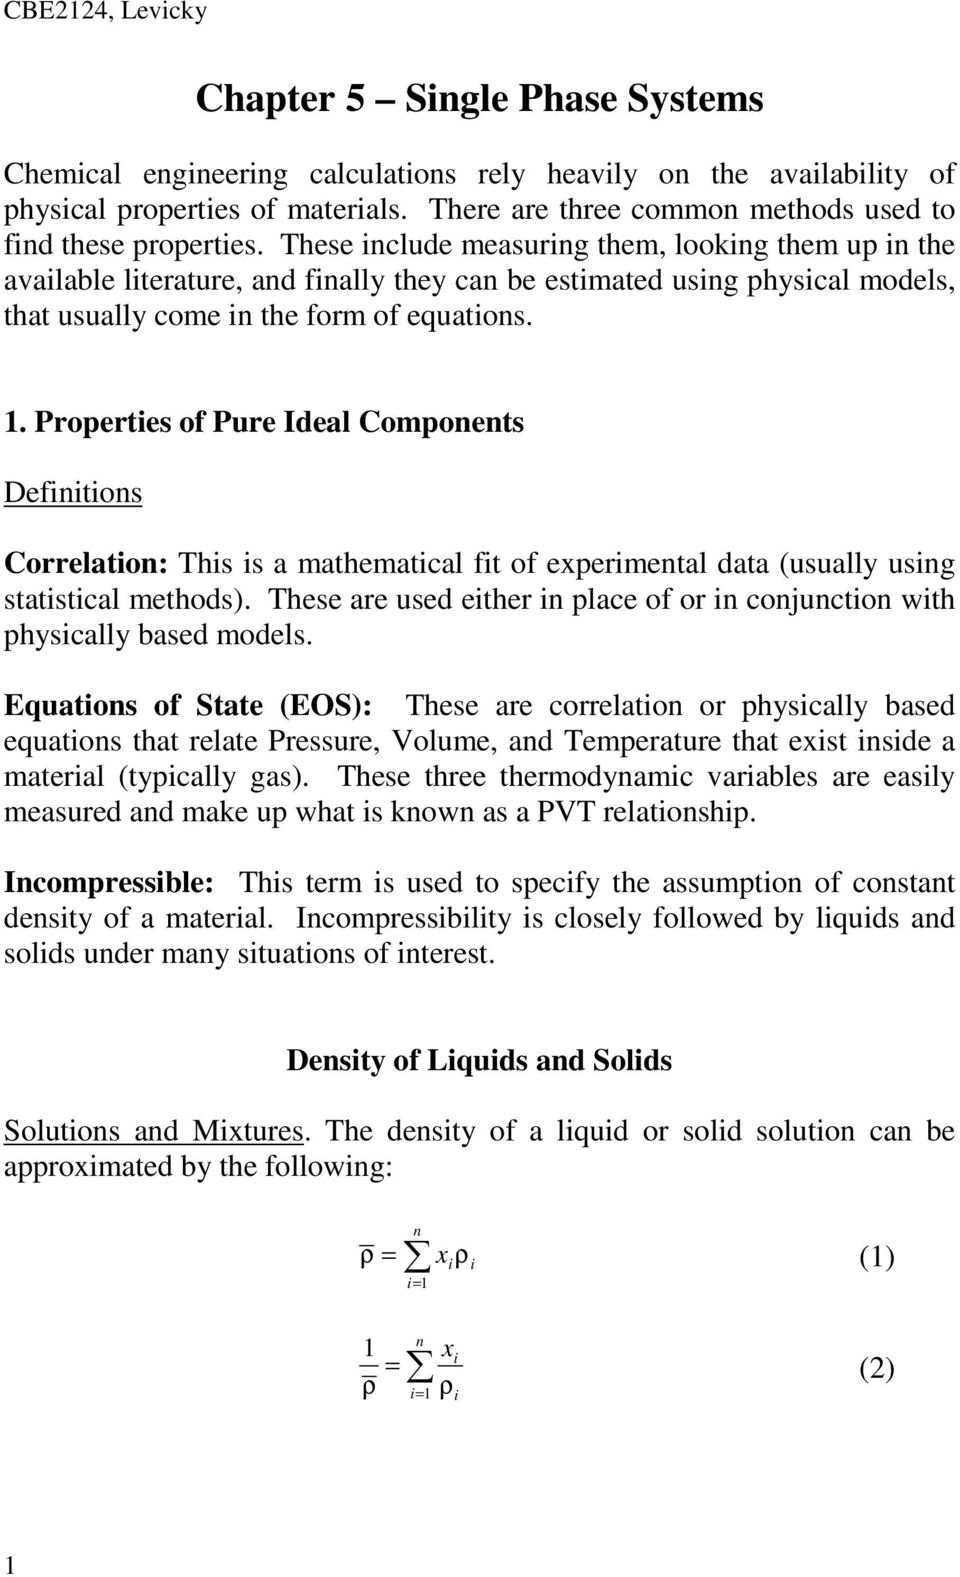 Properties of Pure Ideal Components Definitions Correlation: This is a mathematial fit of experimental data (usually using statistial methods).